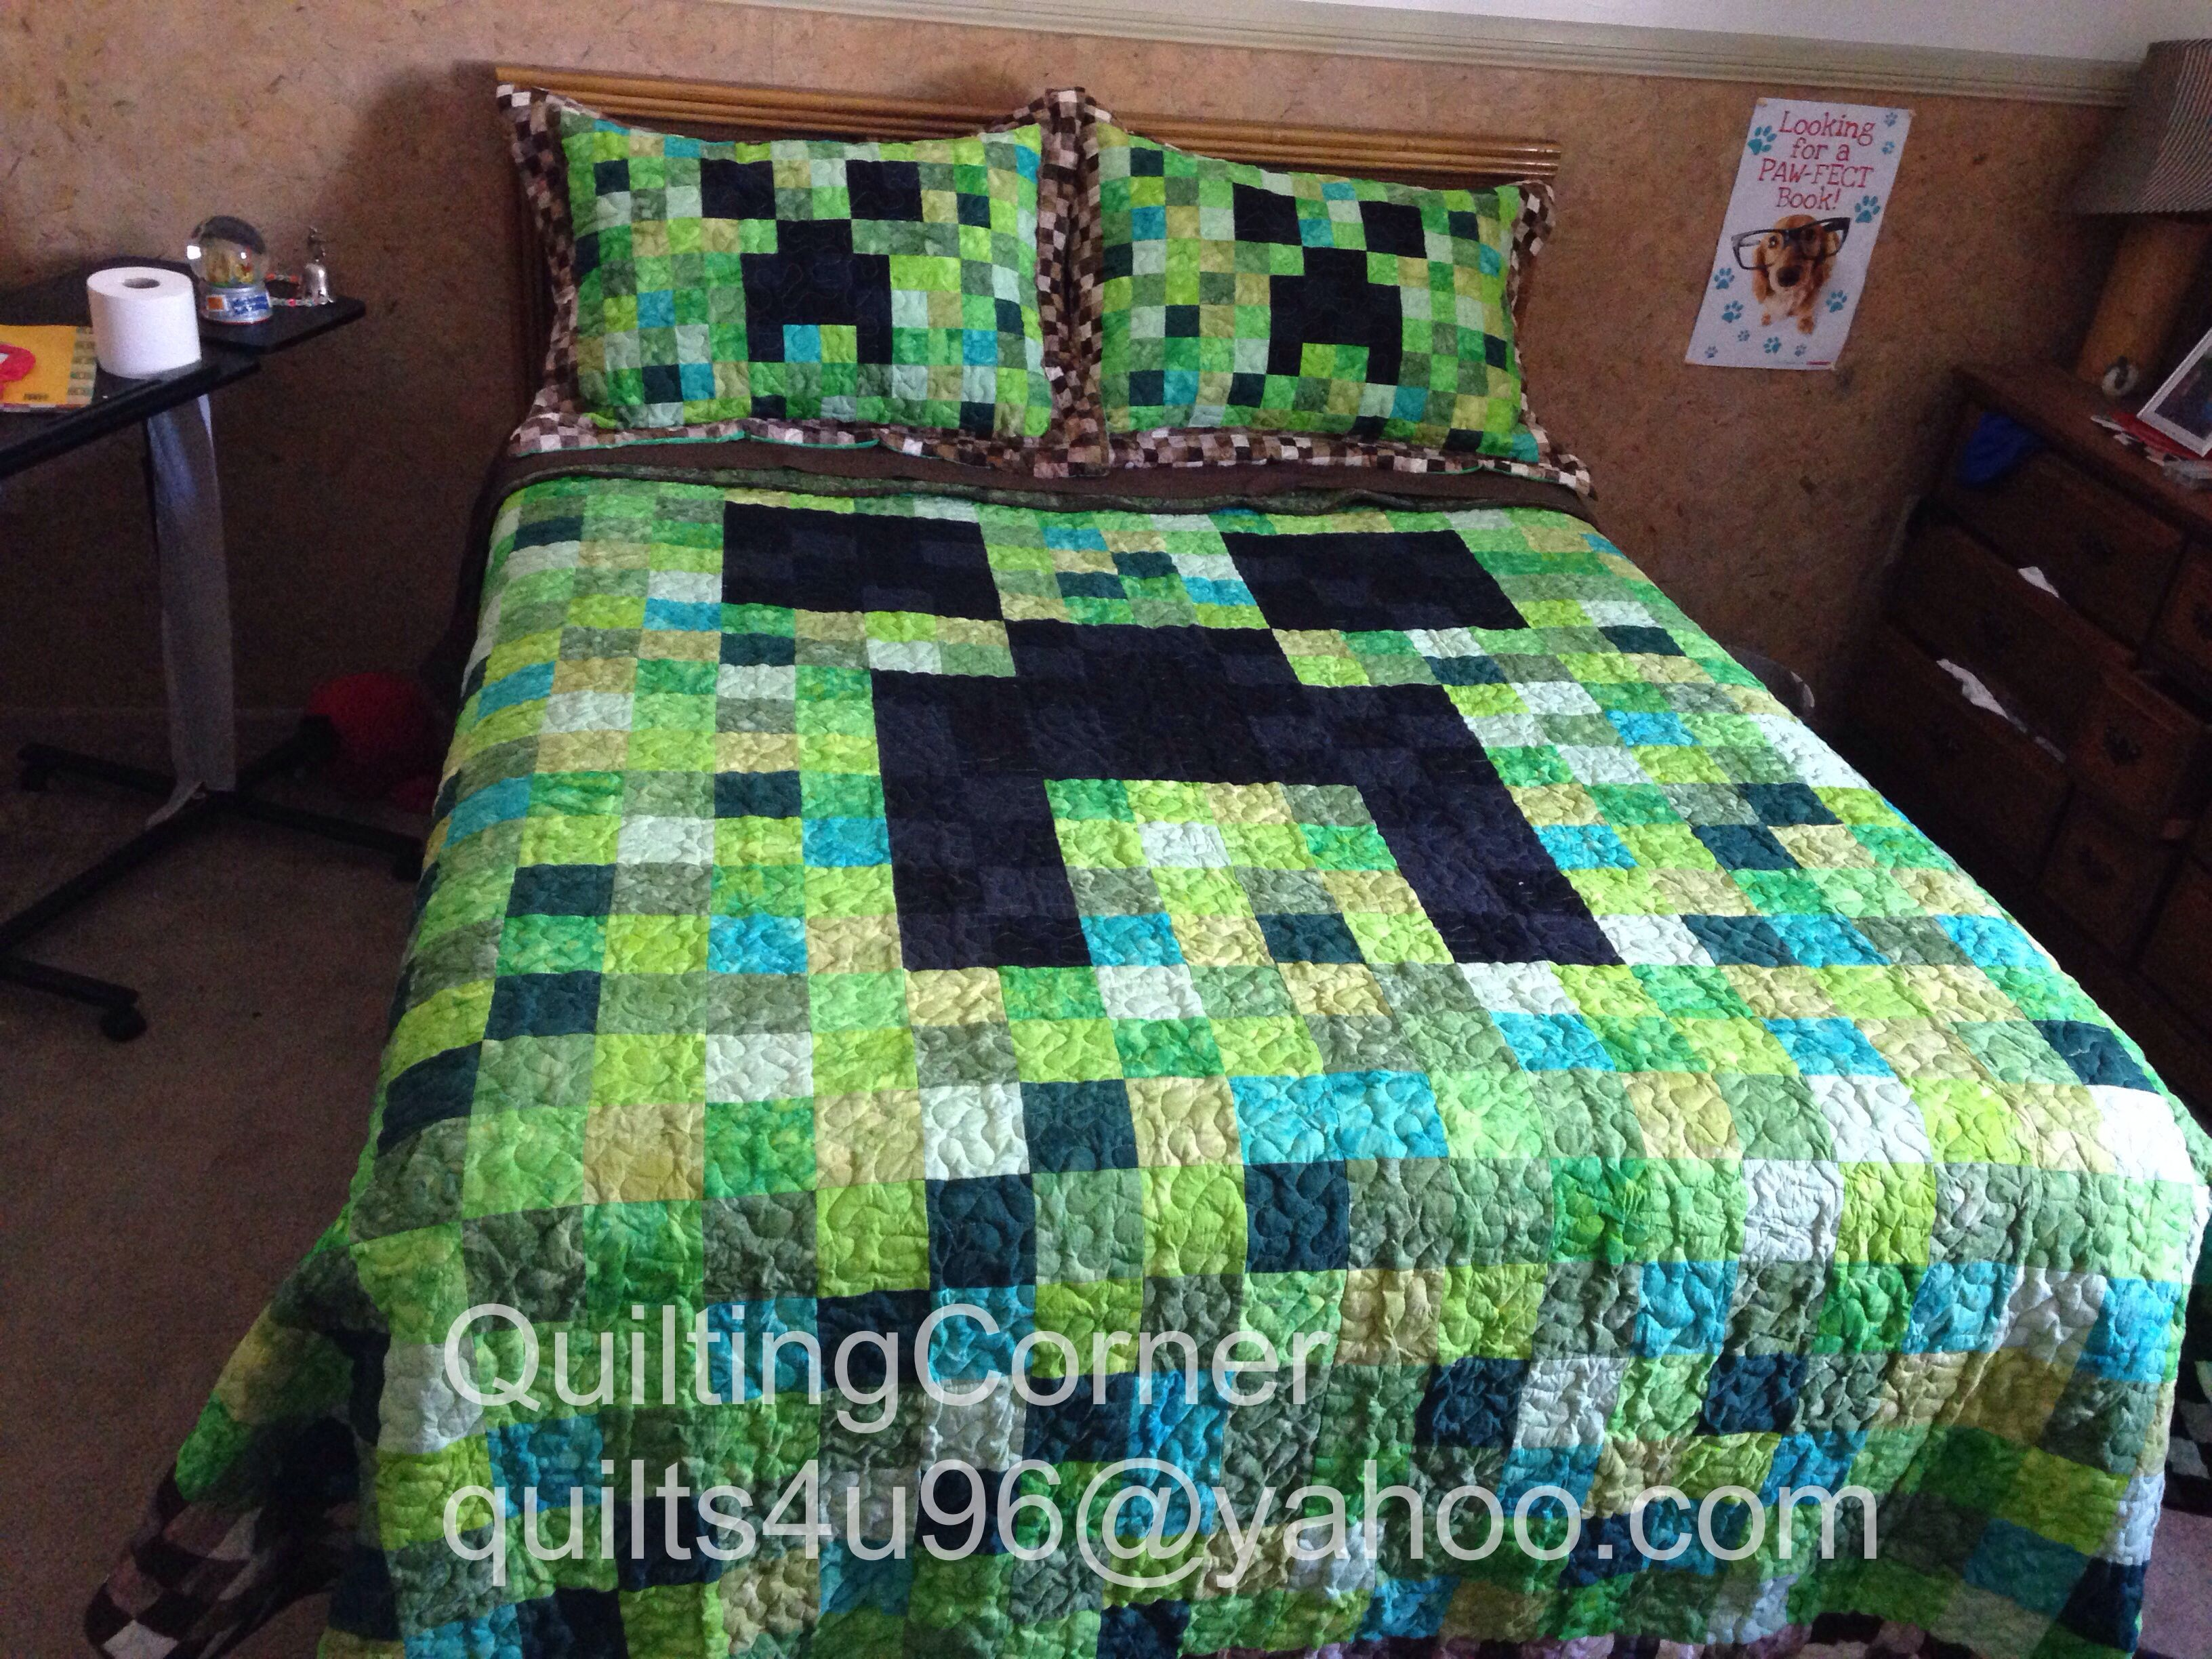 Find This Pin And More On Quilt Ideas By Malachirose.